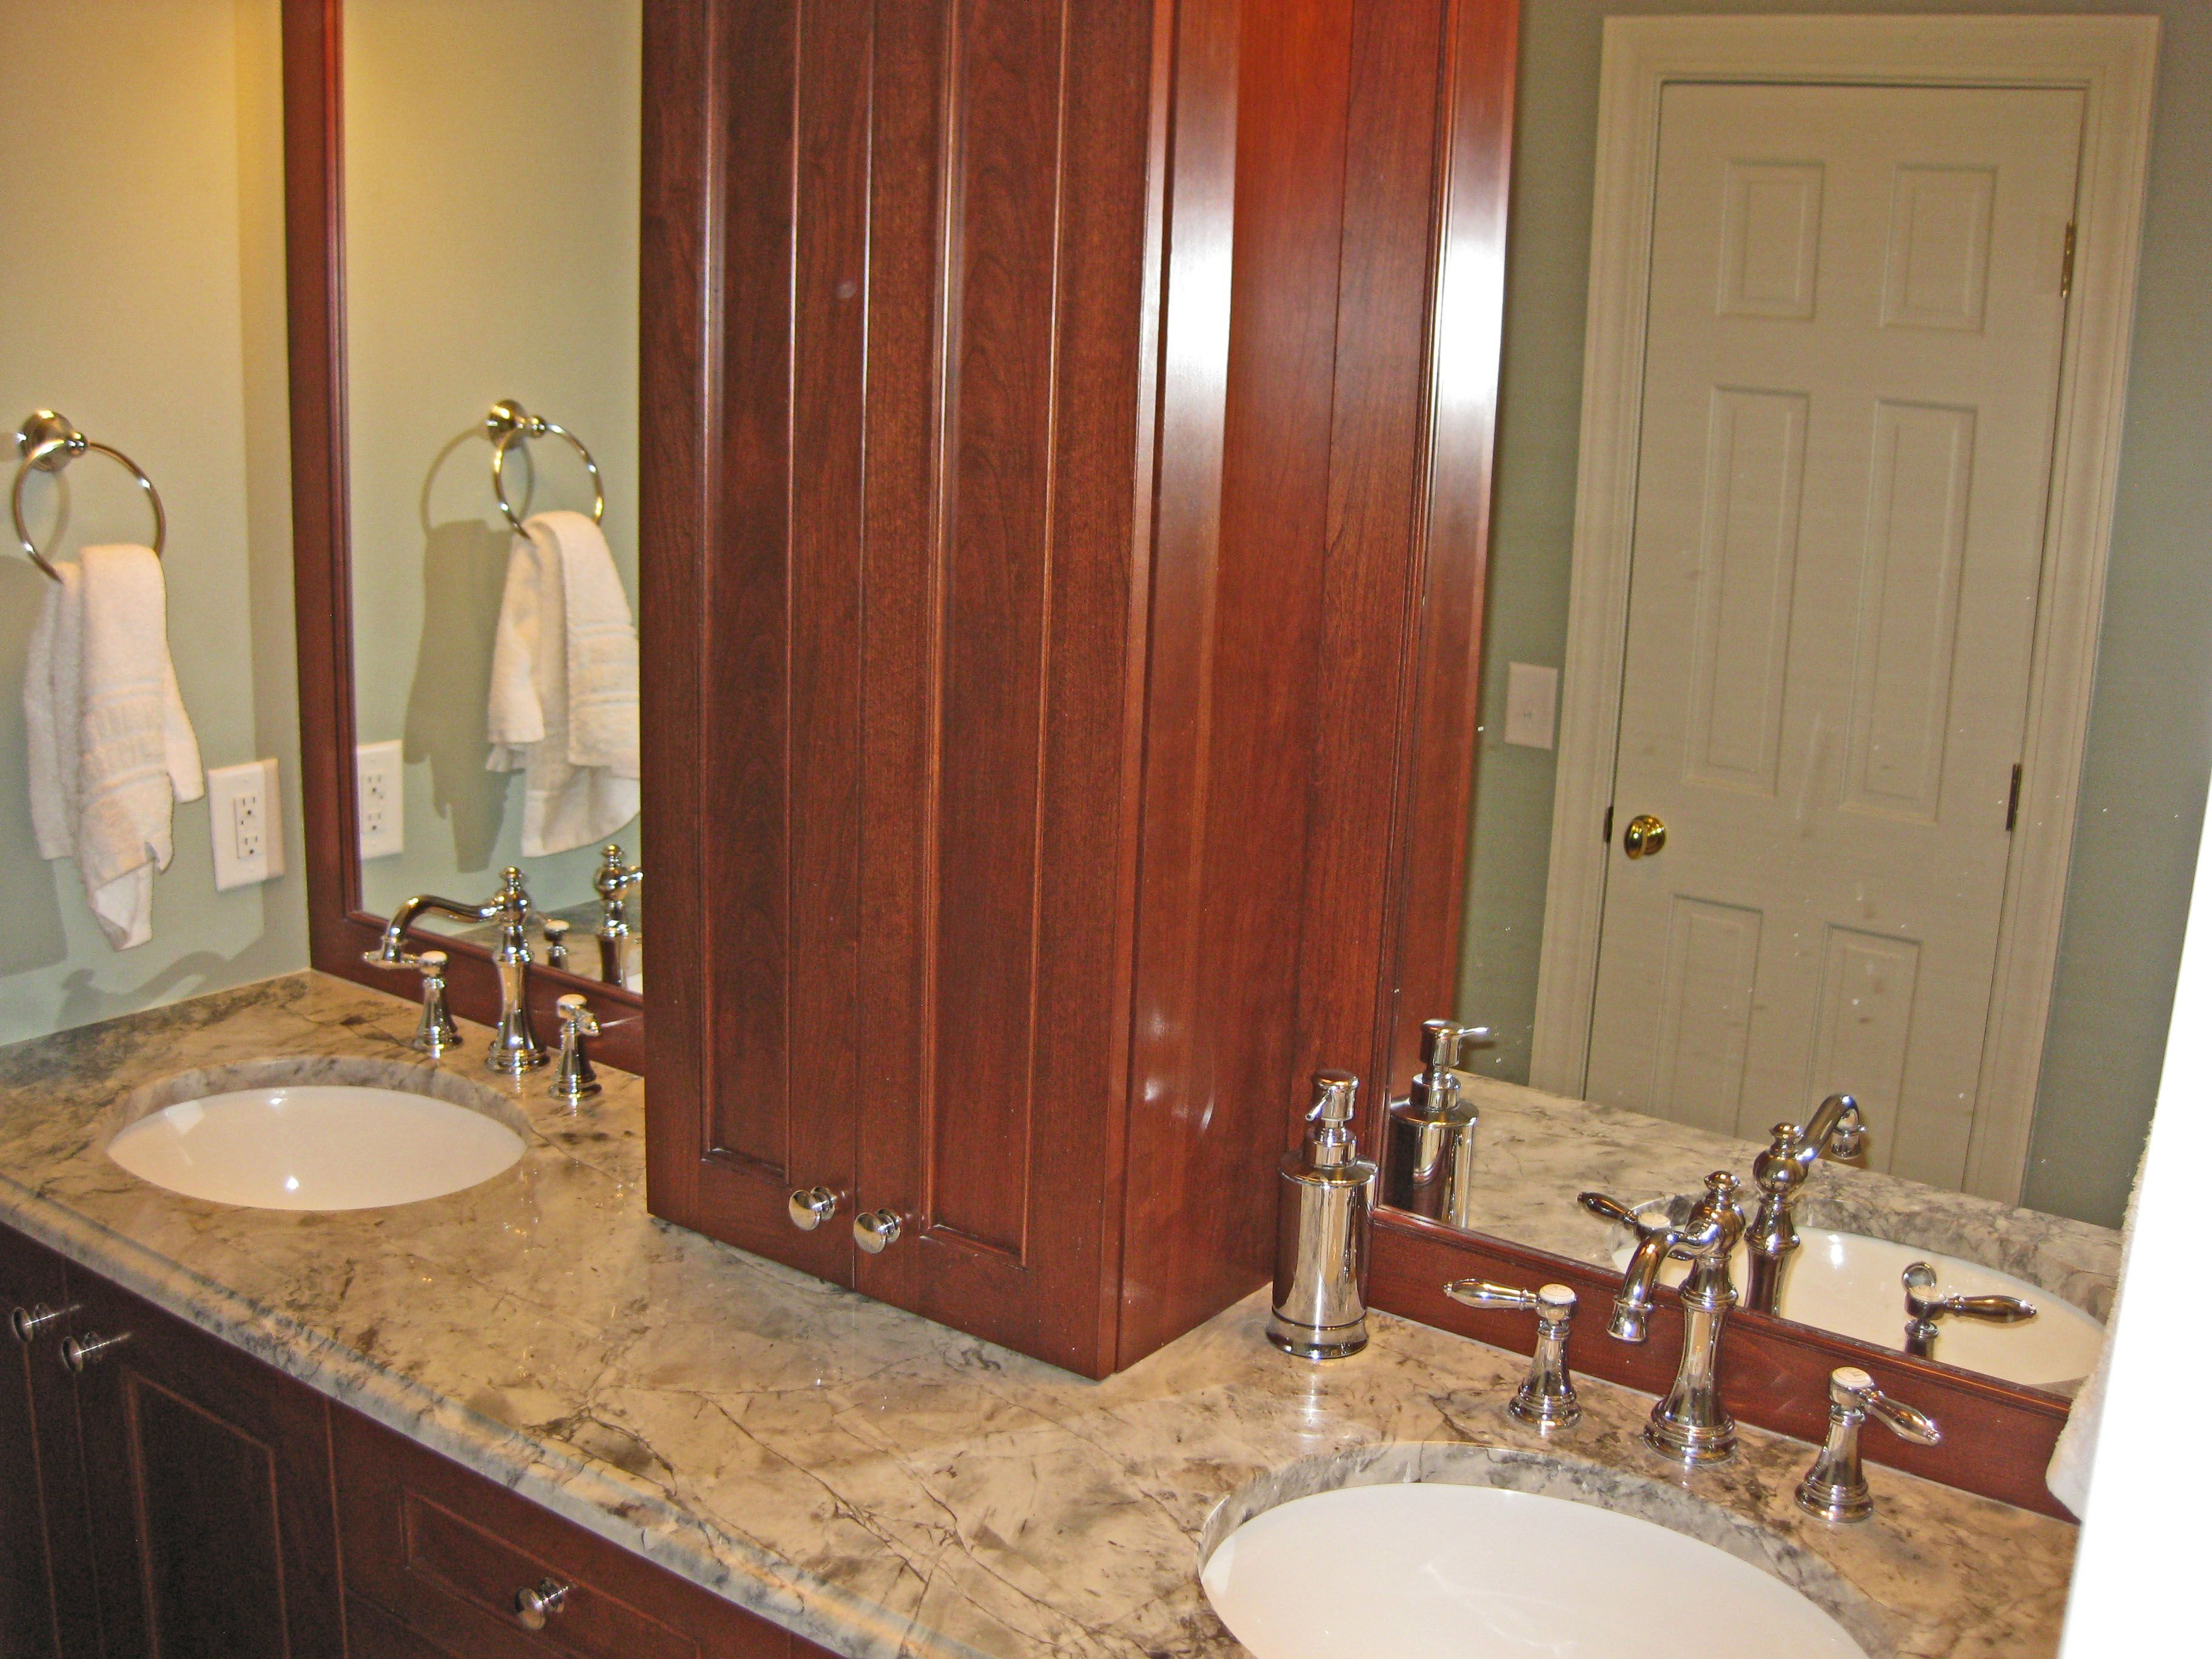 Master Bathroom Cabinetry Cabinets Are Stained Cherry Countertops Are Super White Granite